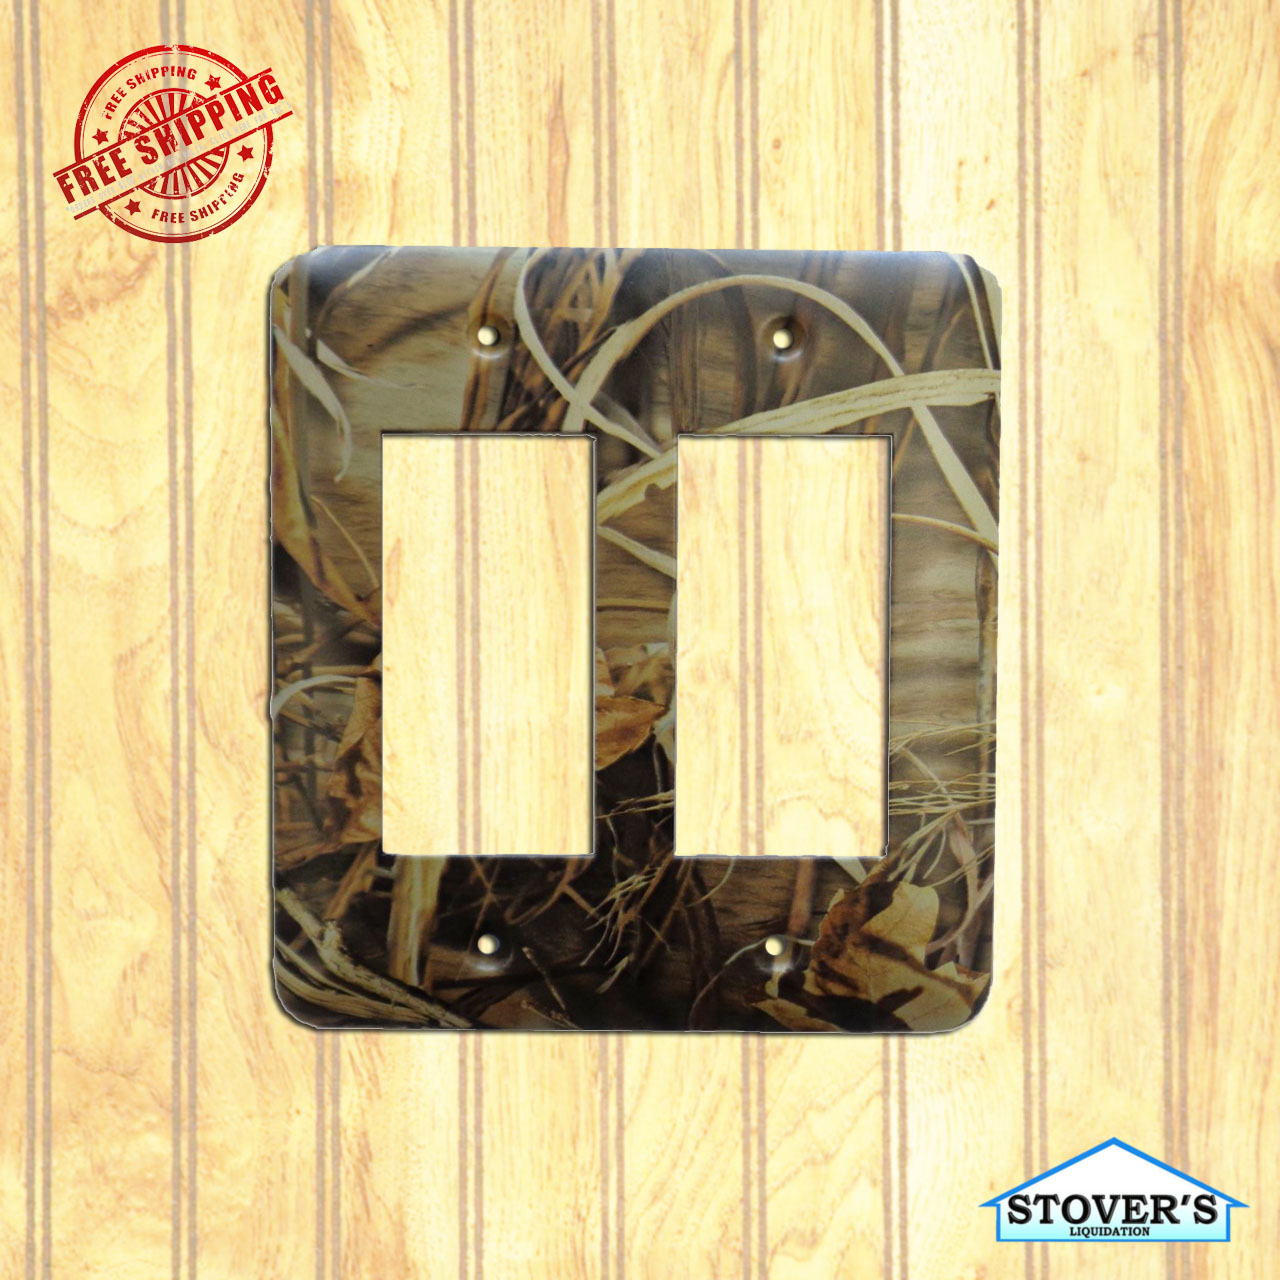 63162-double-rocker-light-switch-plate-outdoors-camo-advantage-max-4-stovers-liquidation.jpg